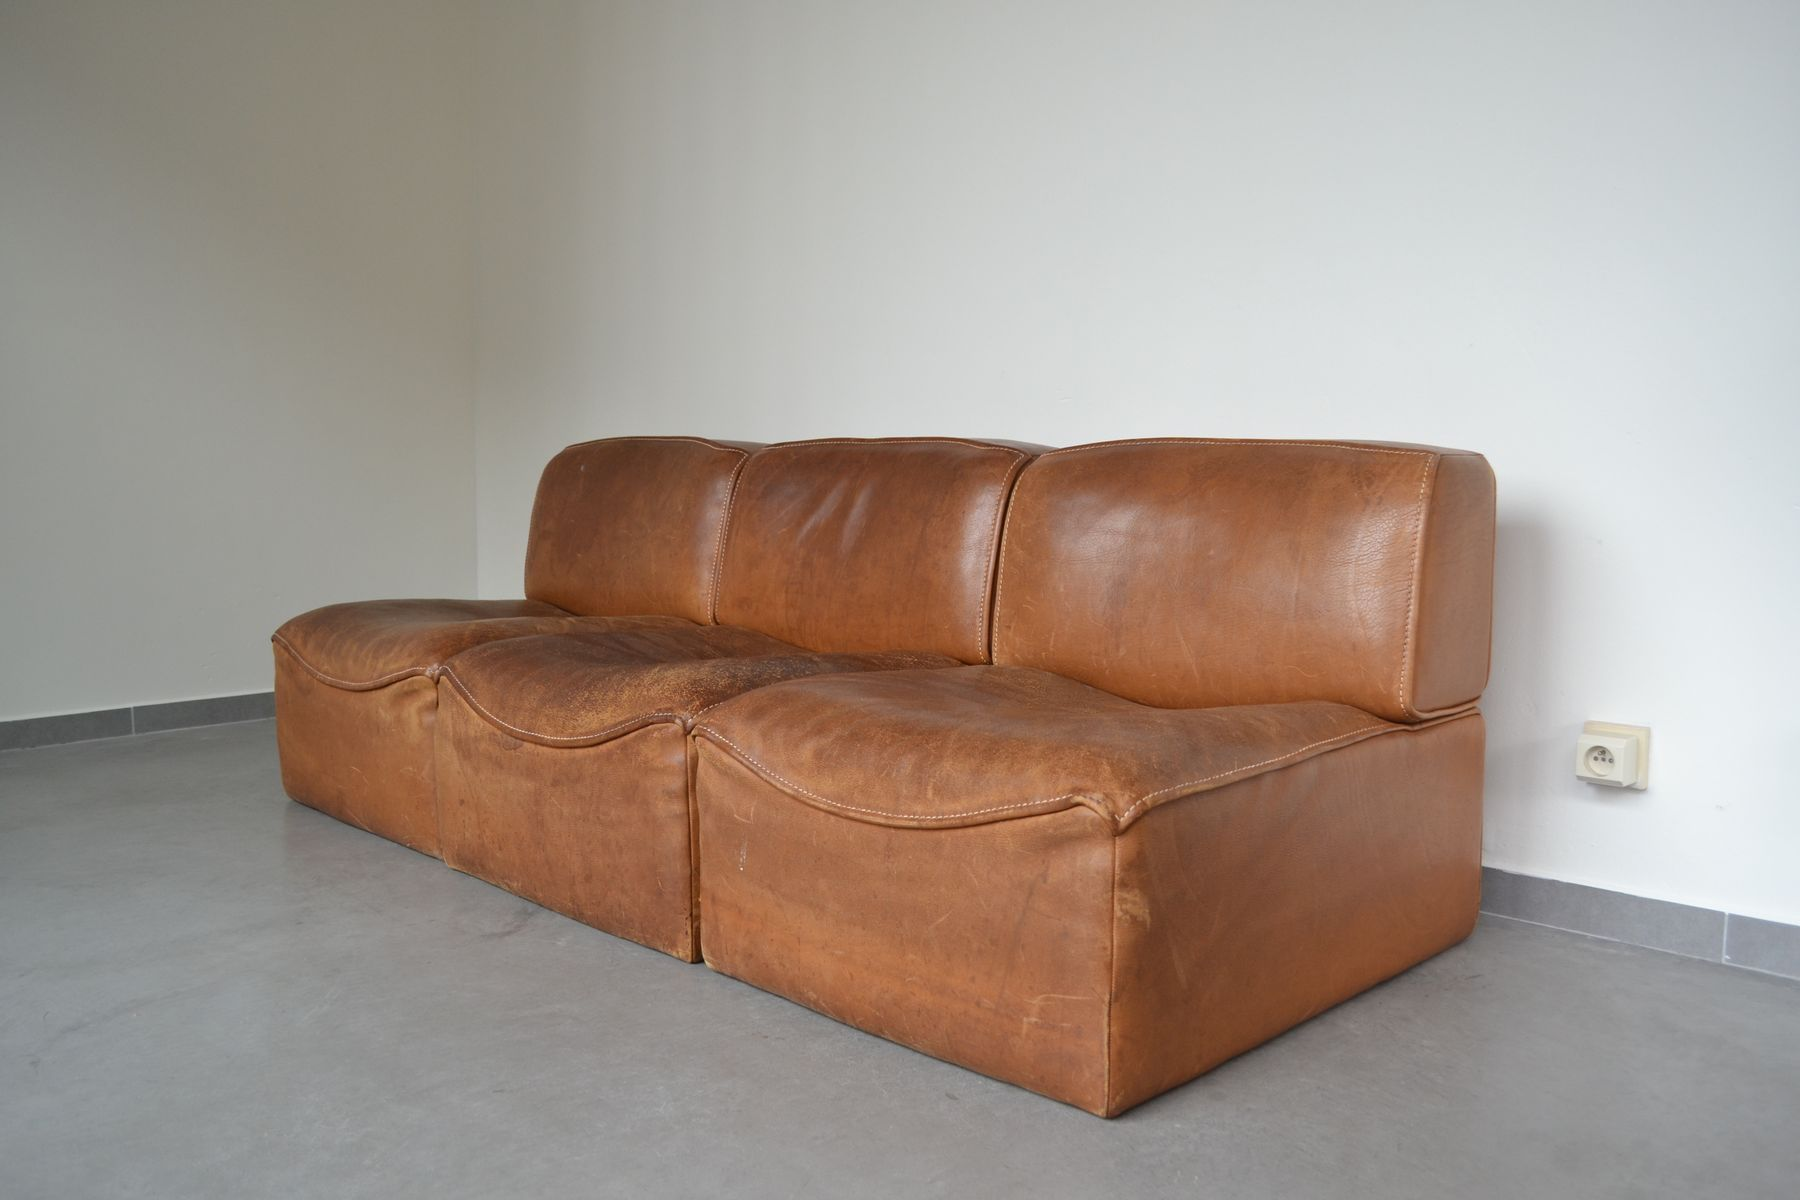 sectional ds15 sofa from de sede 1970s for sale at pamono. Black Bedroom Furniture Sets. Home Design Ideas